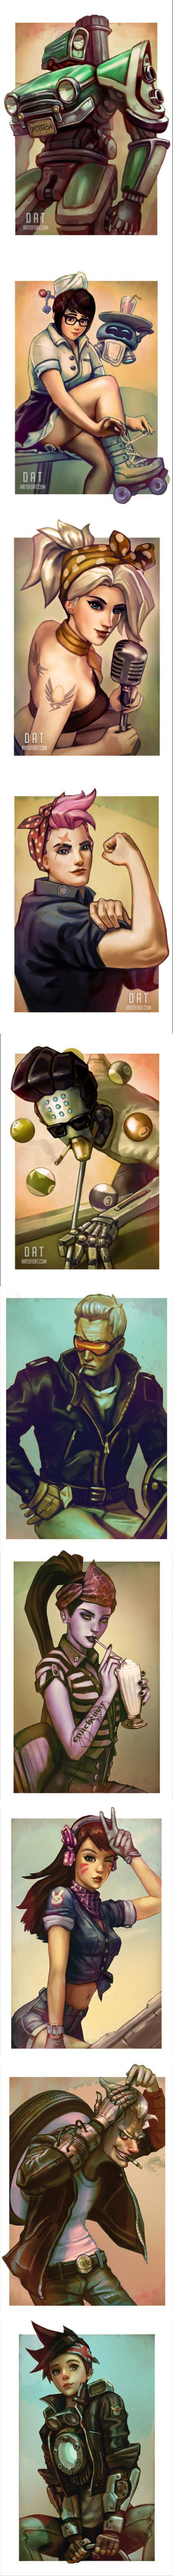 Some cool Overwatch art!